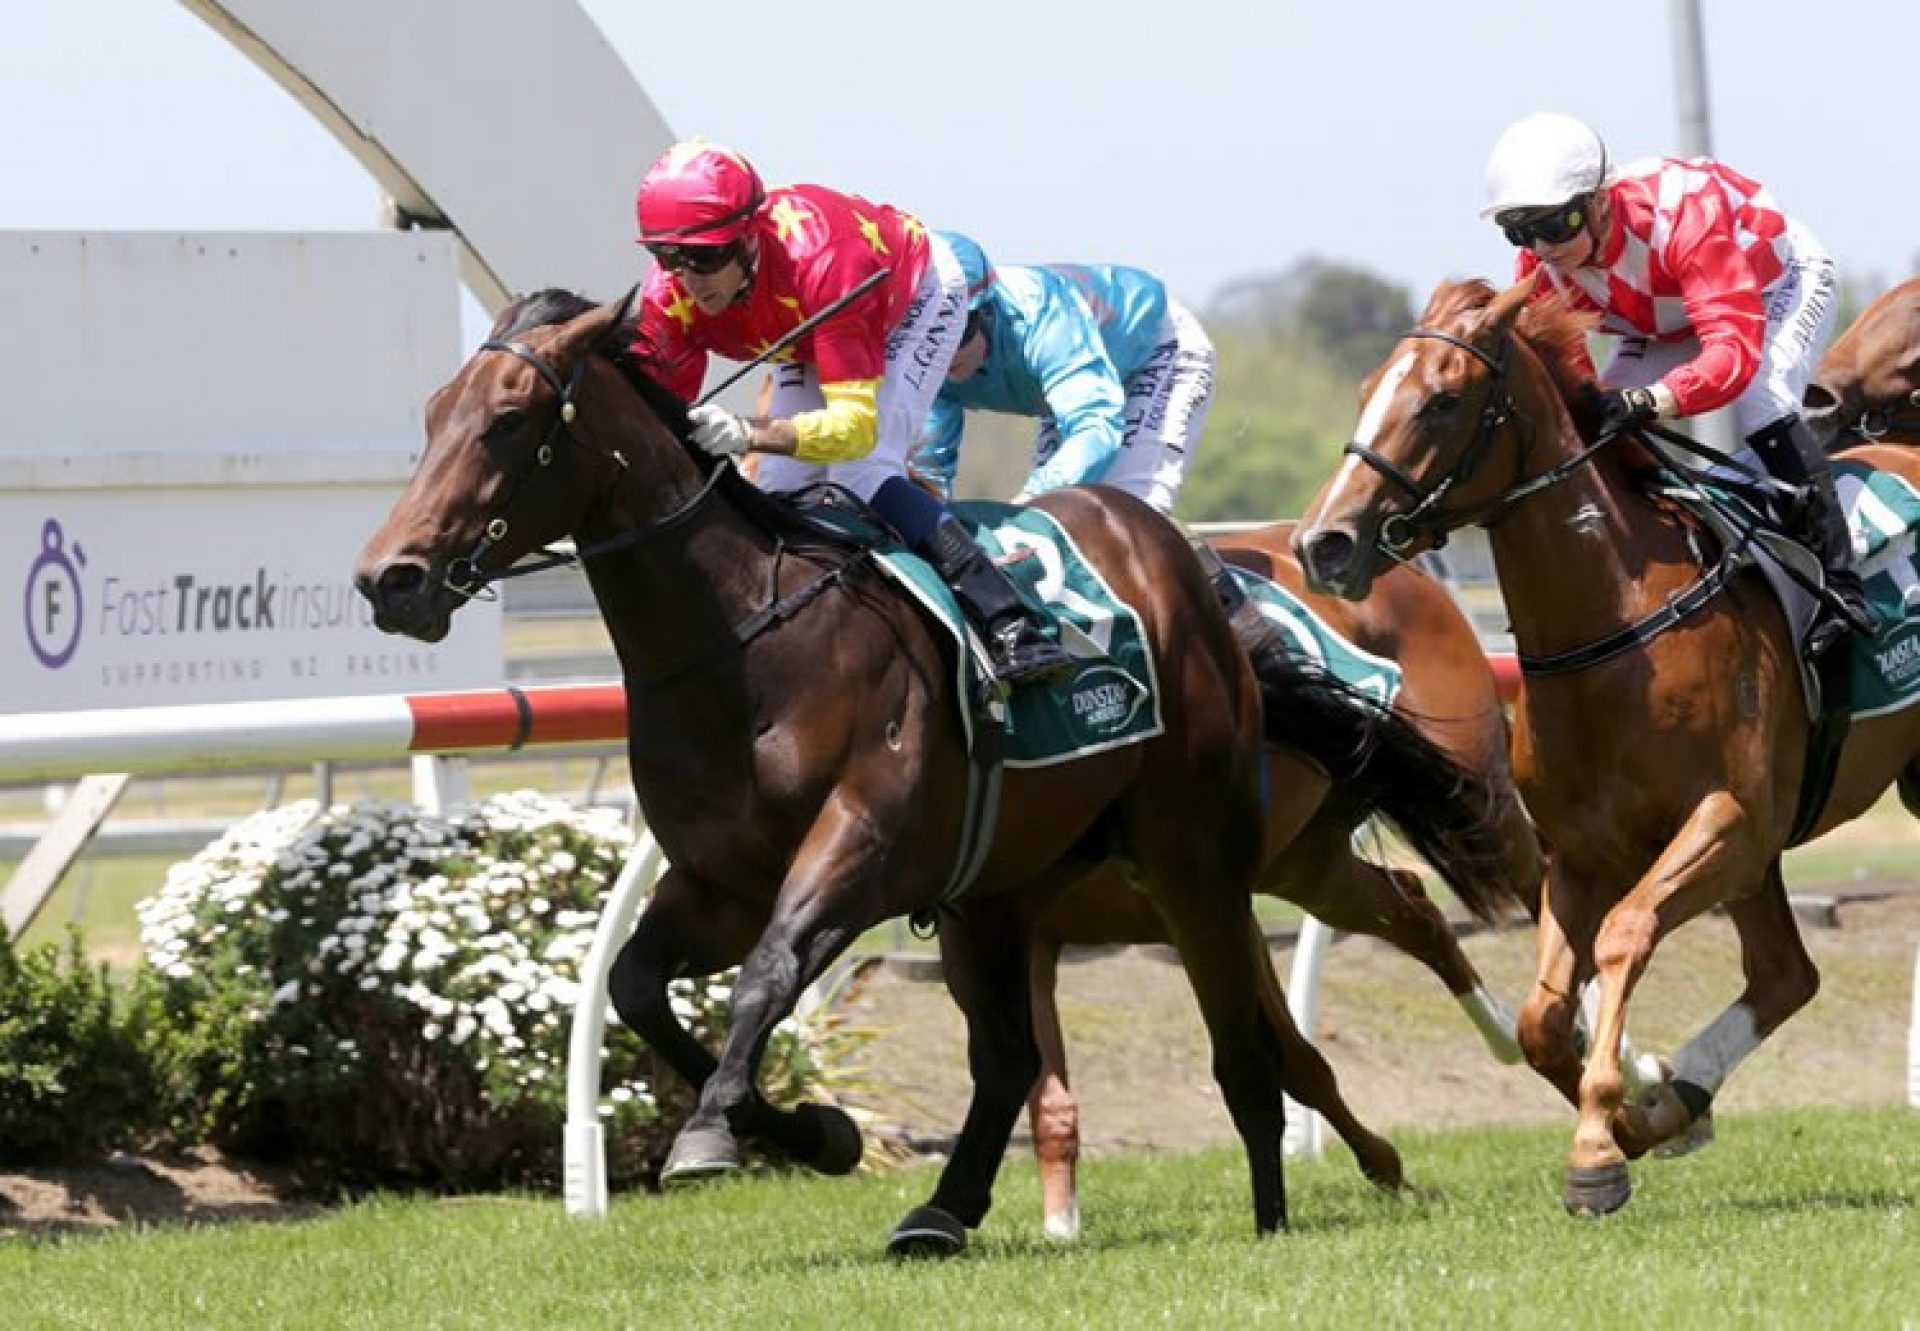 Heart Reef Becomes The Latest Winner By Australia